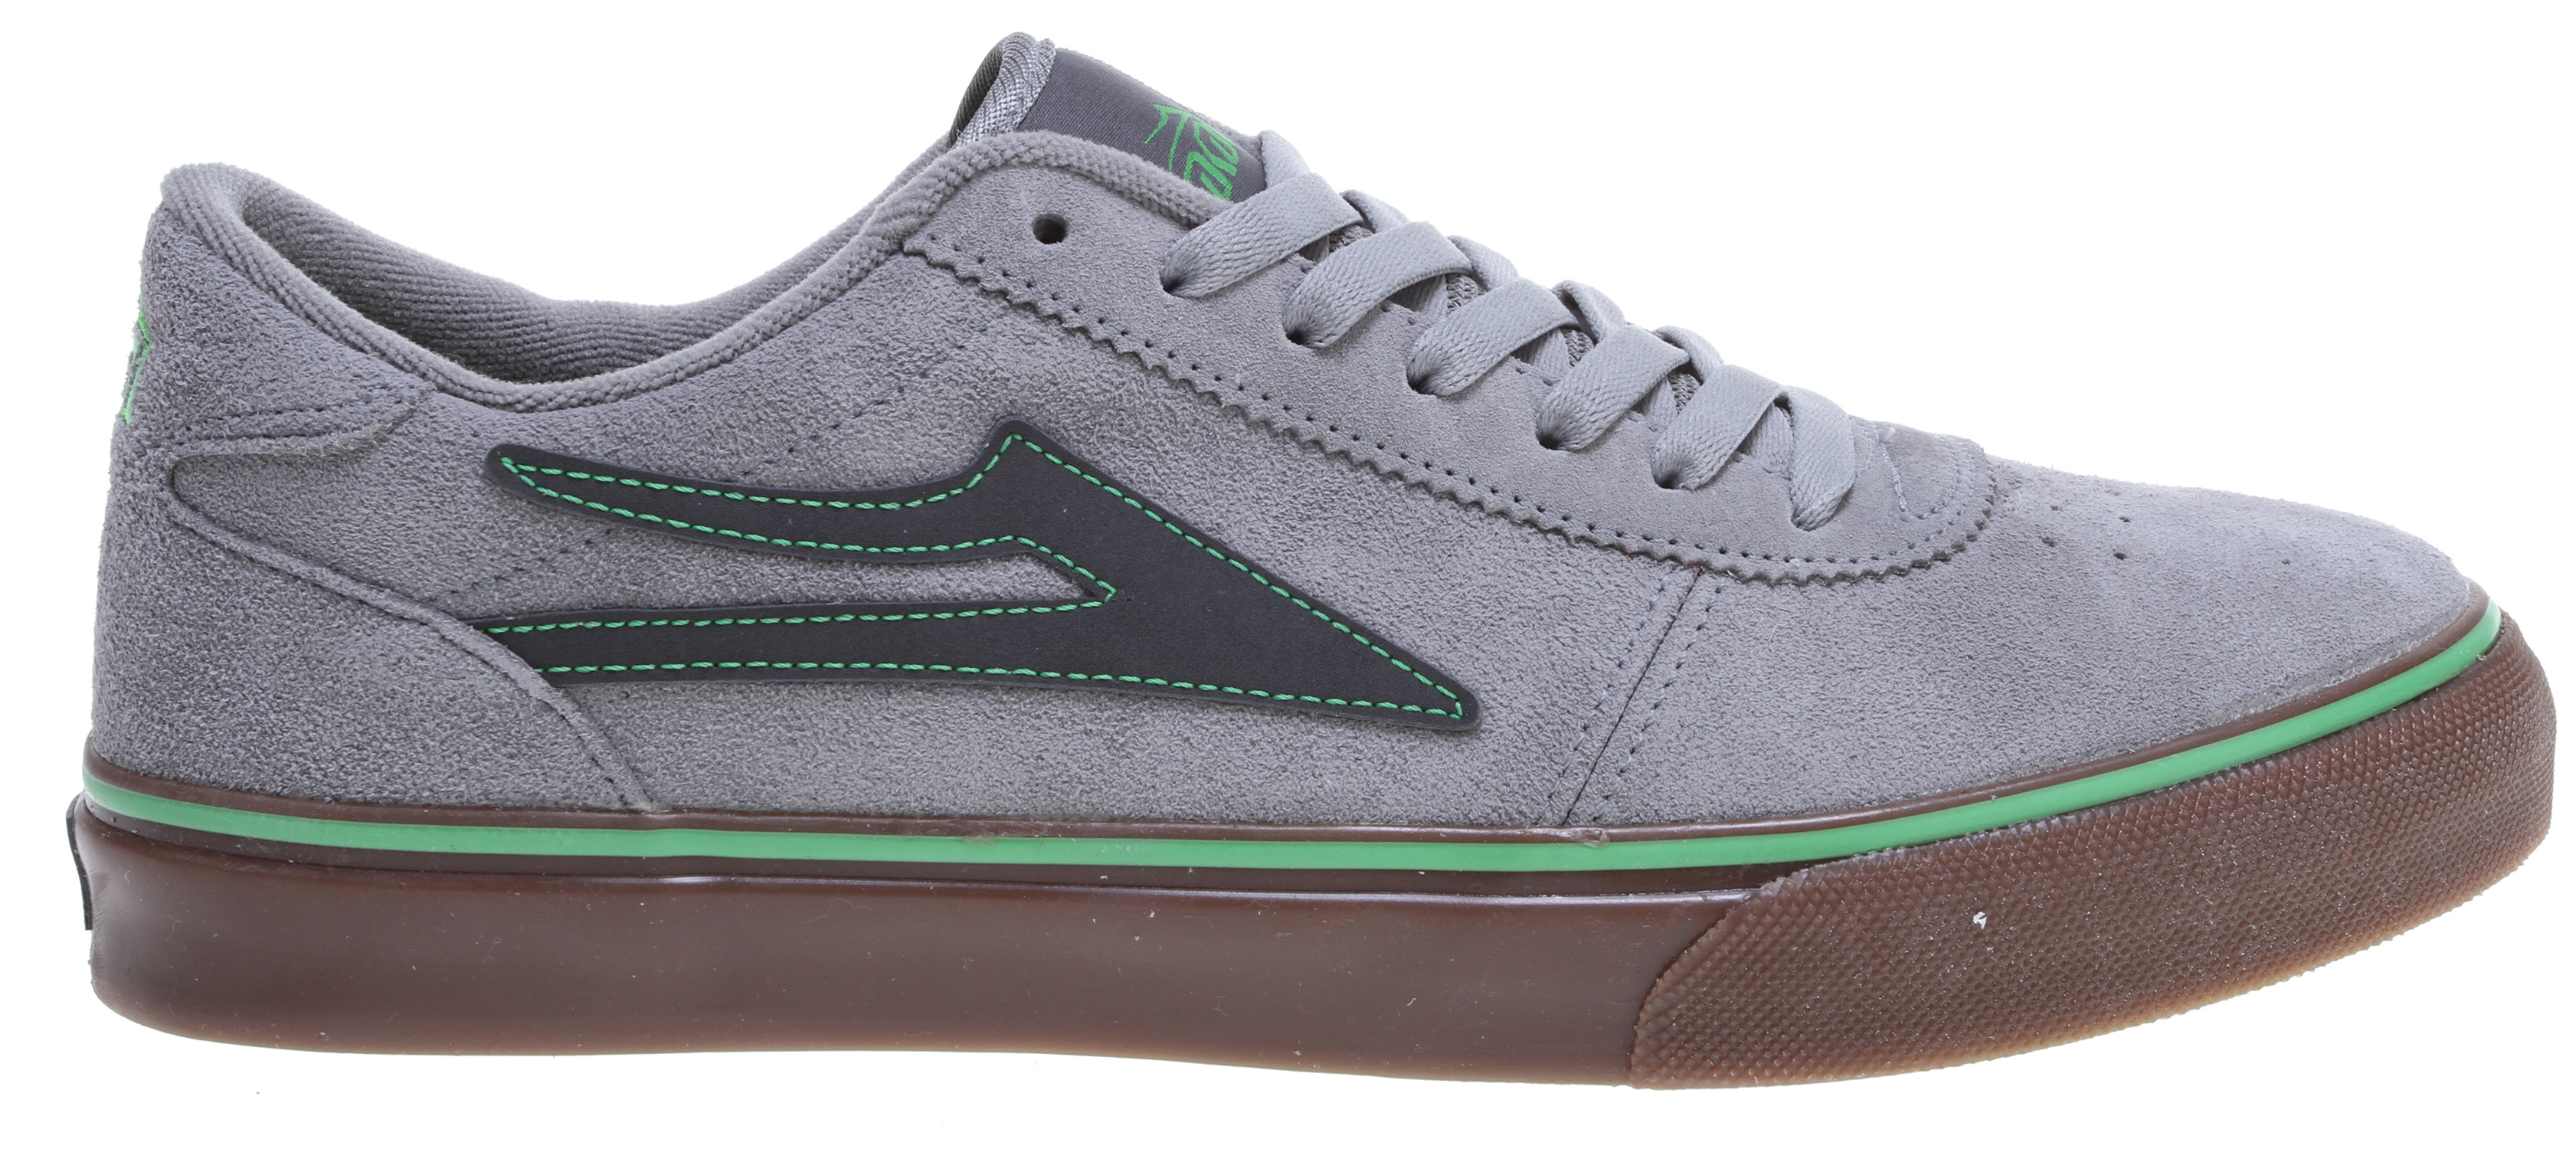 Skateboard Key features of the Lakai Manchester Skate Shoes: Flexible vulcanized construction Tacky gum rubber outsole Durable suede or nubuck upper Full-length shock absorbing insole Form fitting upper for increased board feel - $39.95